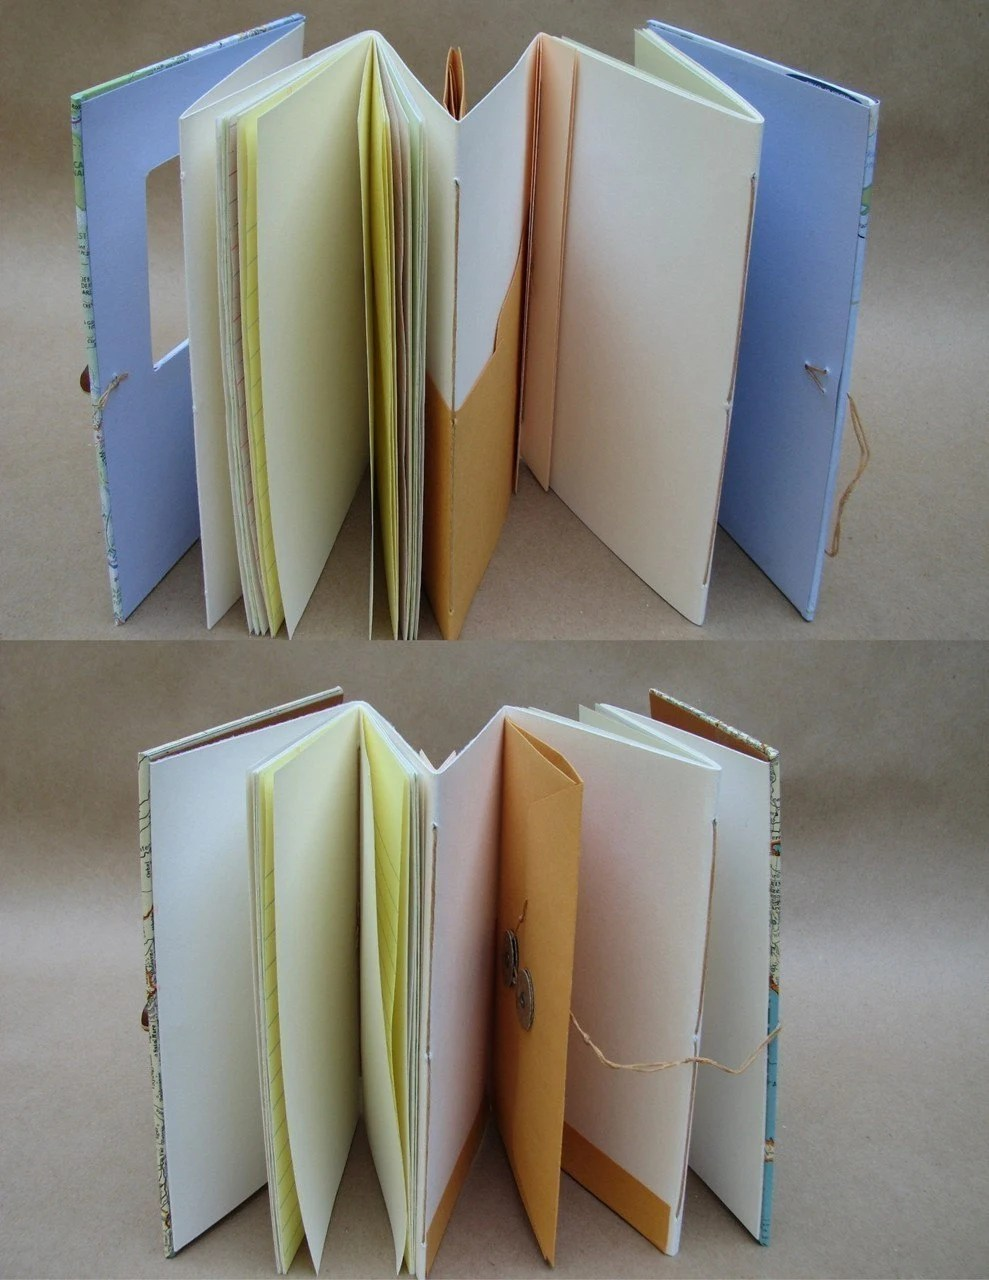 Versatile Travel Journal Notebook with Map Handmade for Artists, Scrapbookers and Writers Made to Order for You